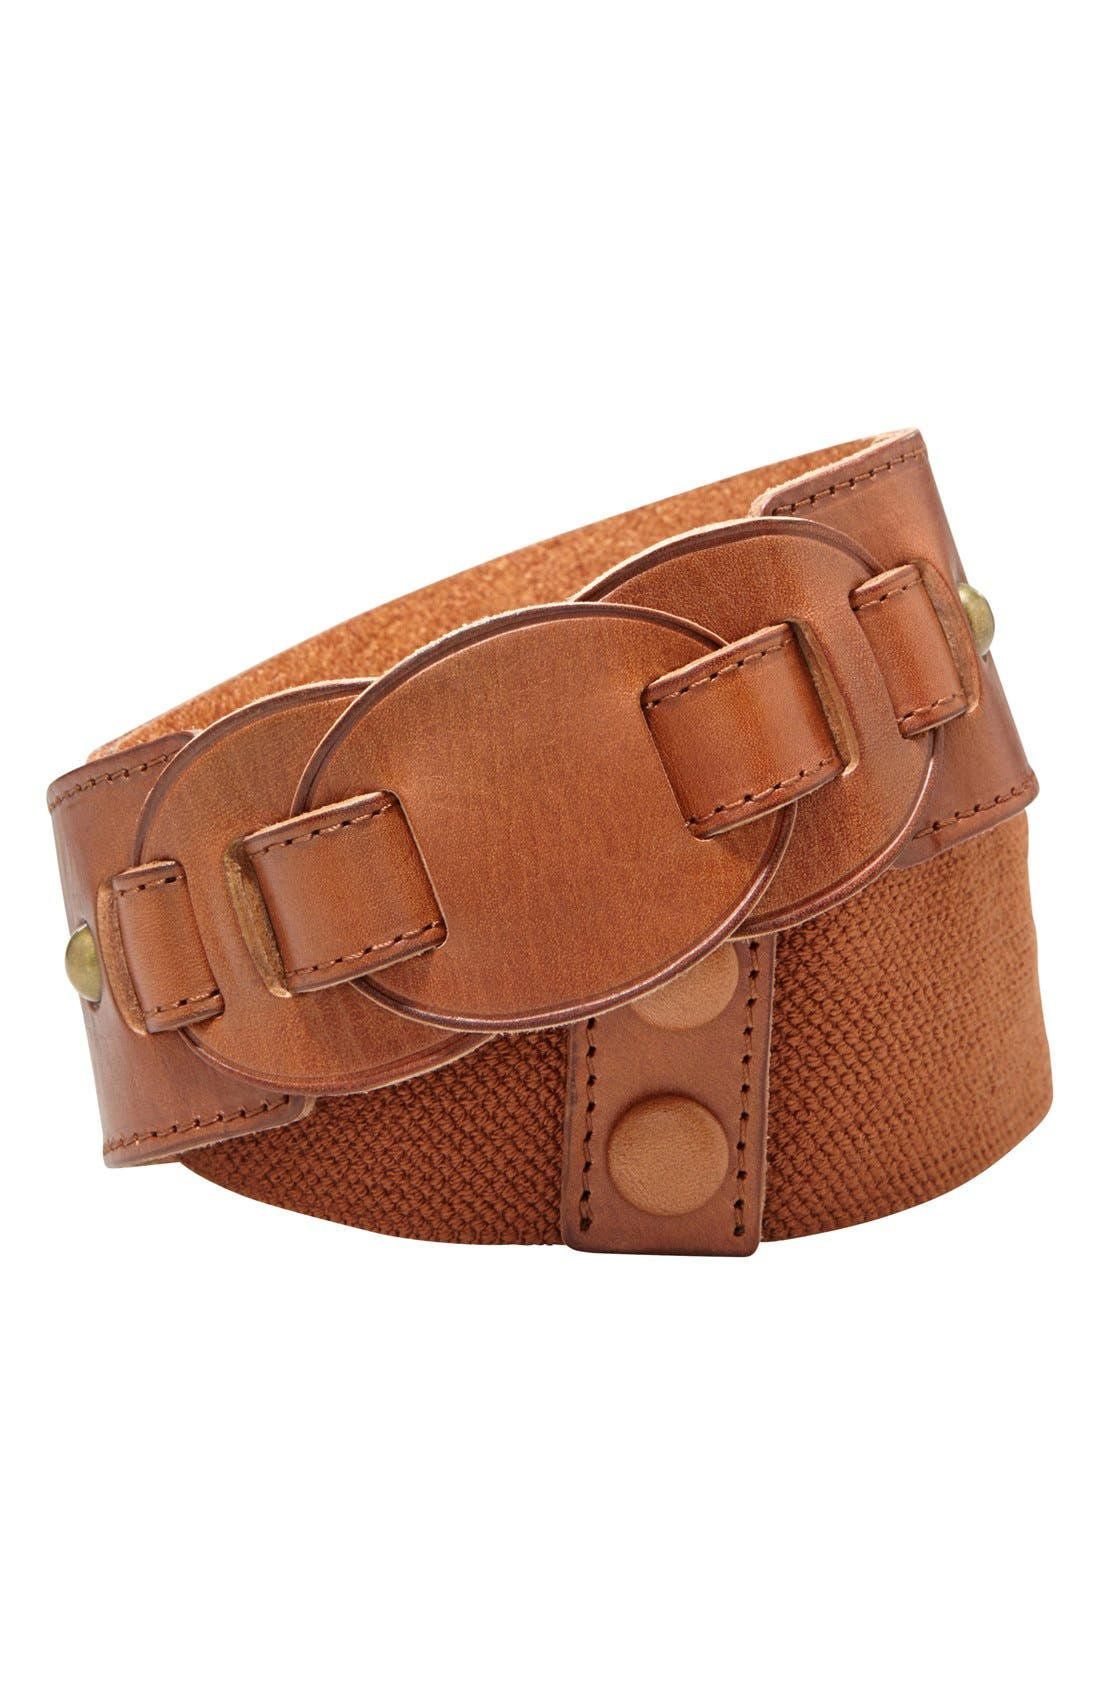 Main Image - Fossil Stretch Leather Belt